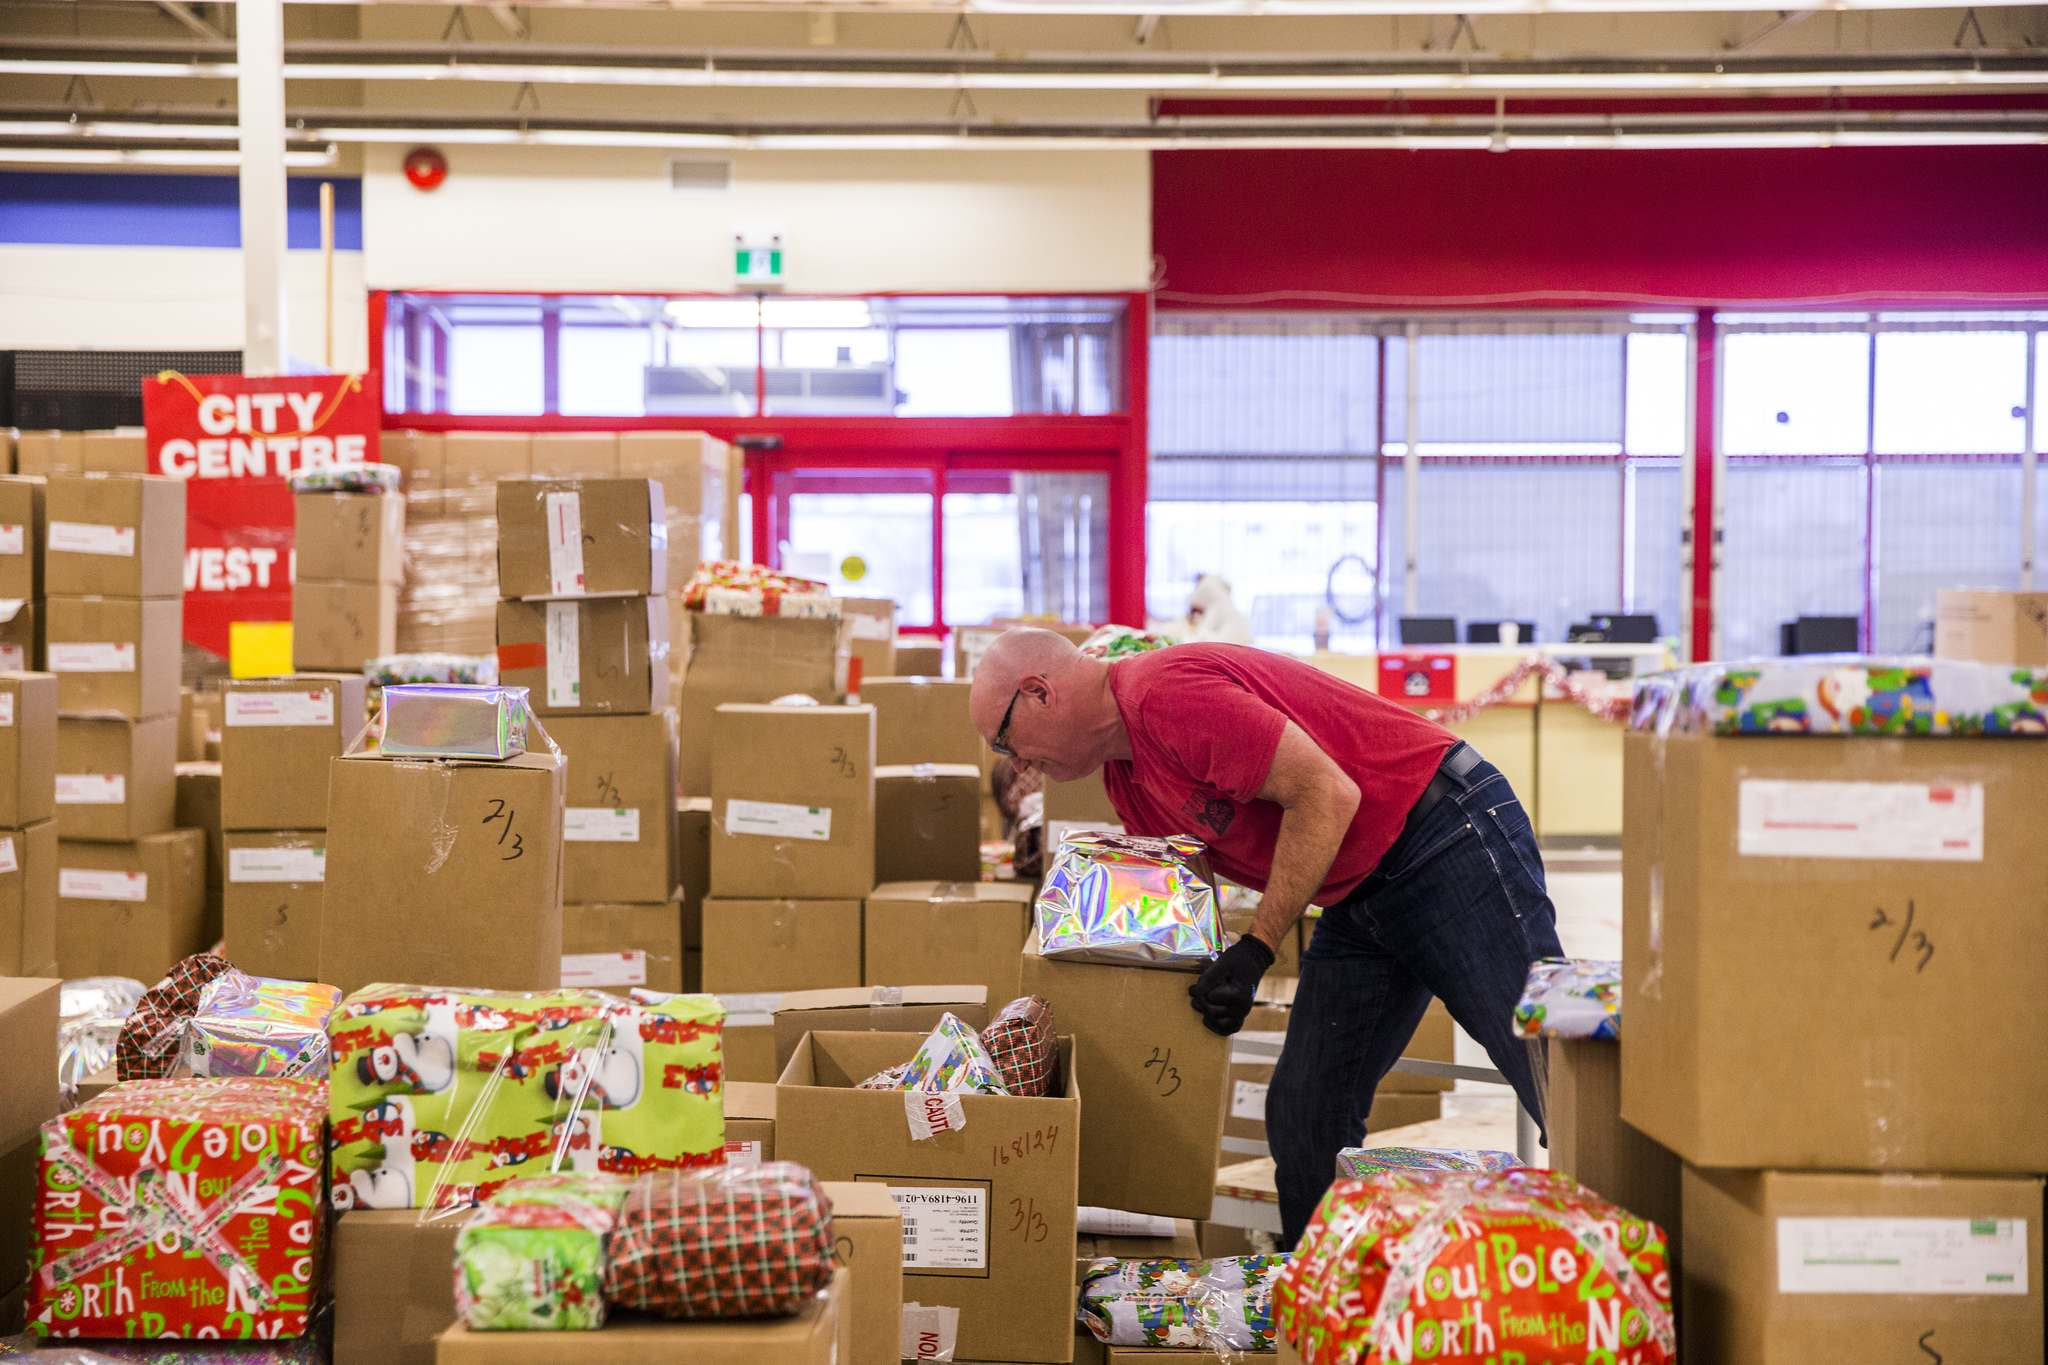 MIKAELA MACKENZIE / WINNIPEG FREE PRESS Tim Watters unloads packed hampers at the Christmas Cheer Board, which supplies 17,000 hampers annually, in Winnipeg on Thursday, Dec. 5, 2019. For Brenda Suderman/Gabrielle Piche story. Winnipeg Free Press 2019.</p>